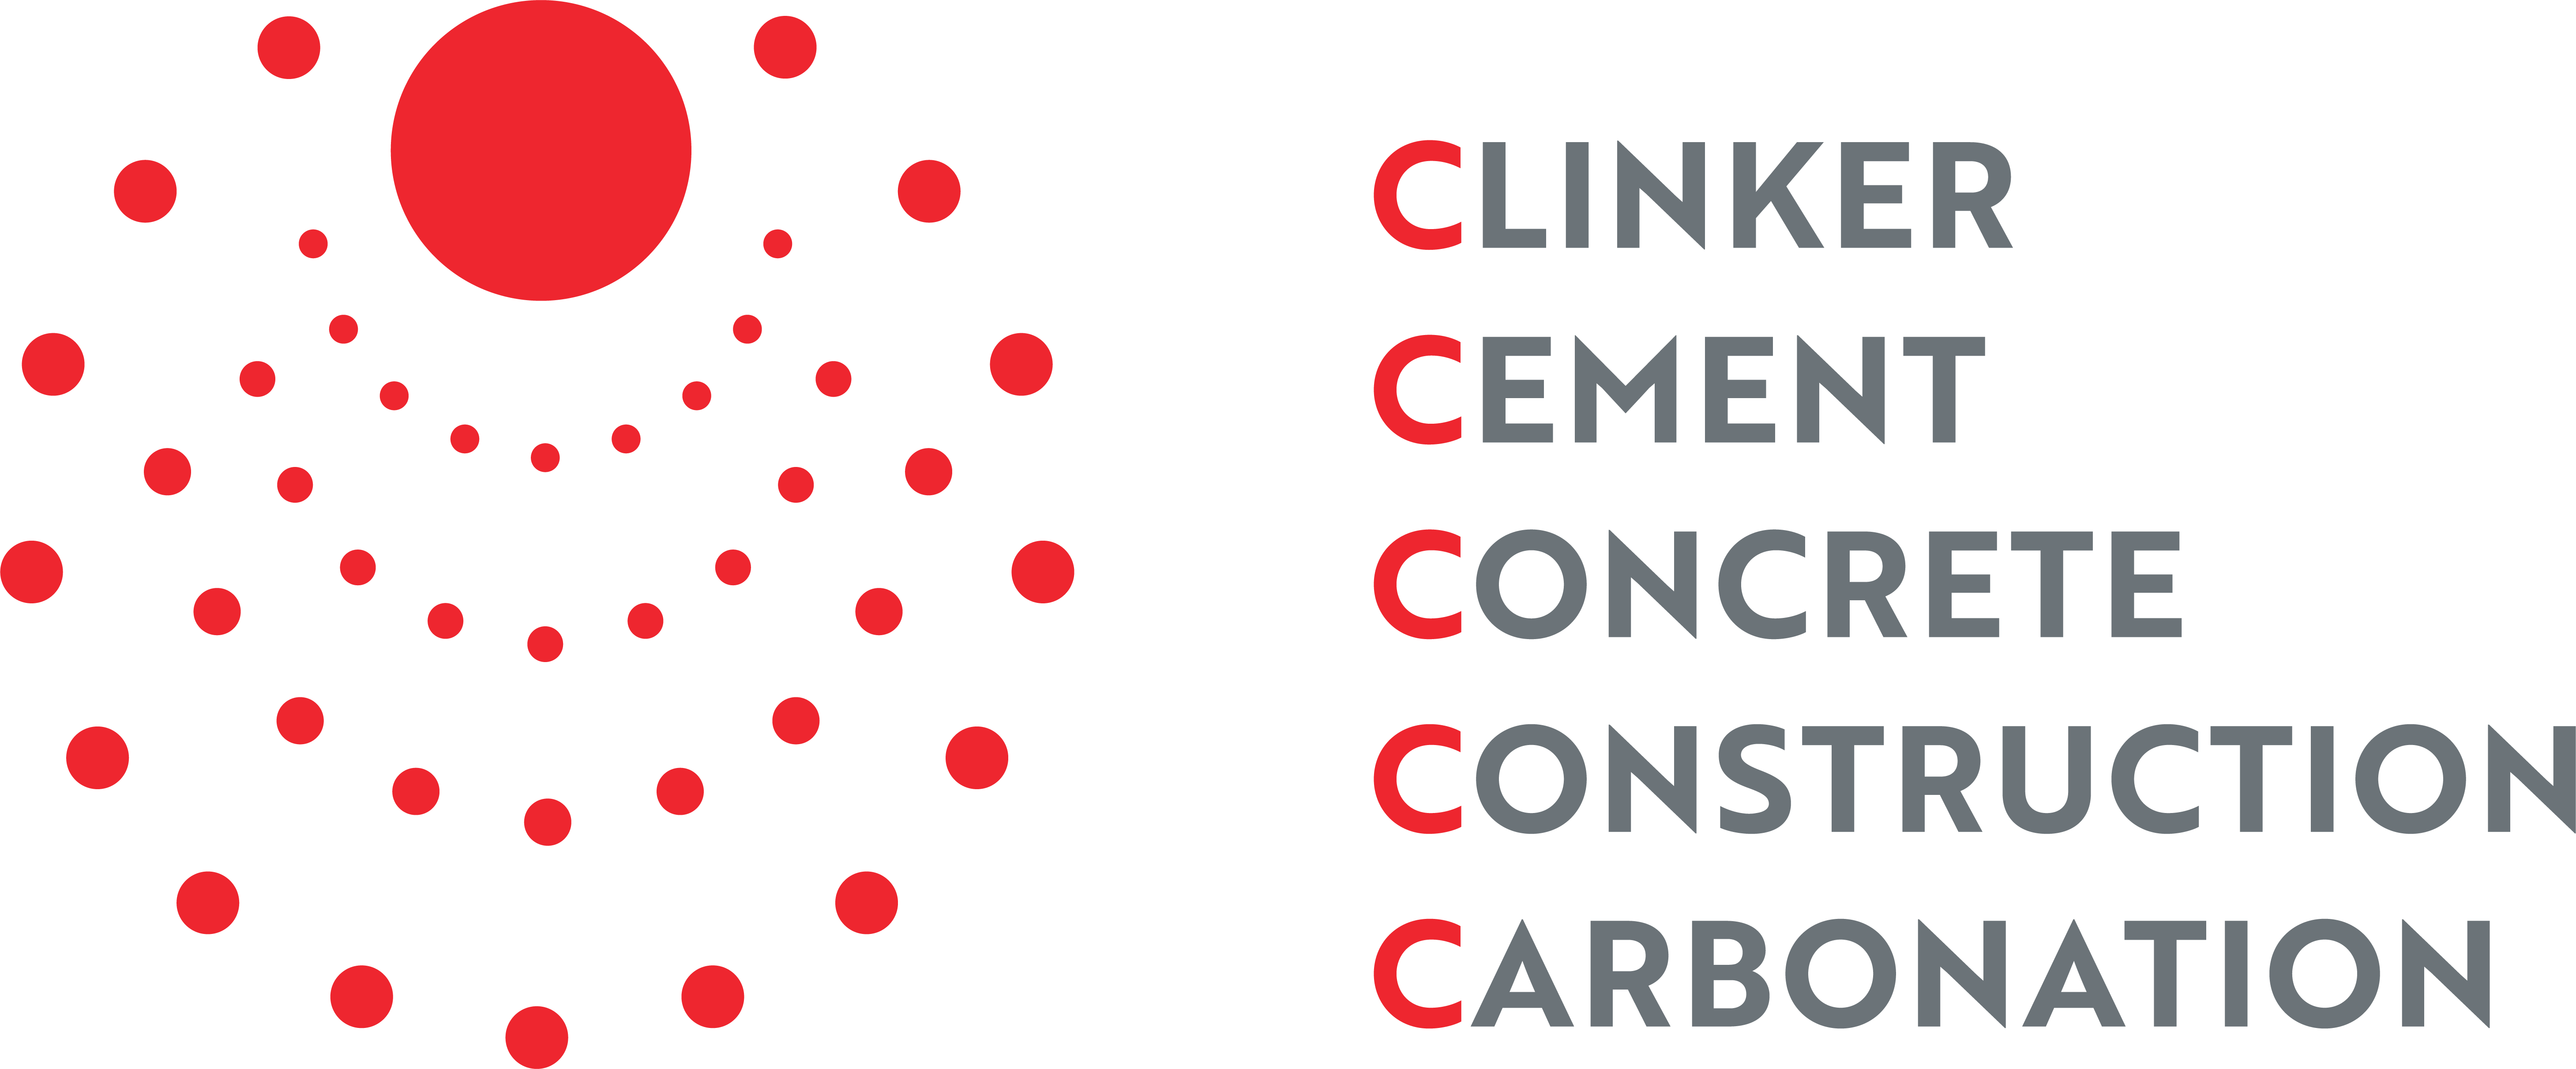 Clinker Cement Concrete Construction Carbonation